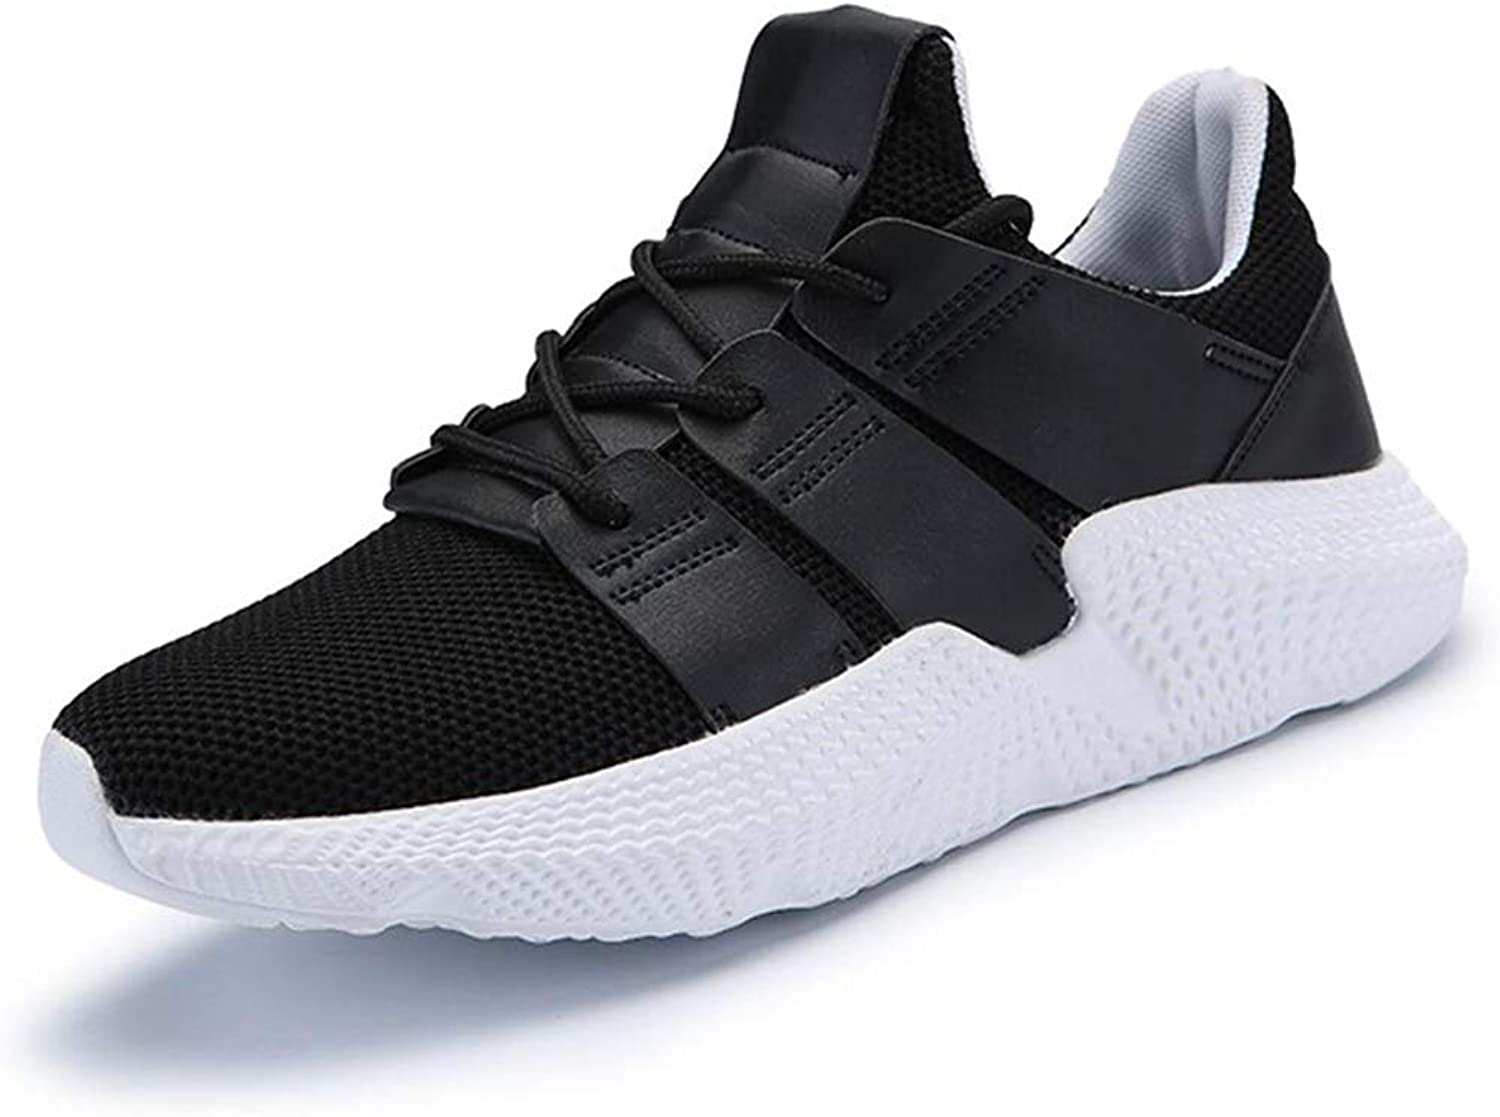 Outdoor Sneakers for Mens Woven Mesh Casual shoes Flying shoes Breathable and Comfortable Men's Outdoor Running Tricolor (color   BlackAndWhite, Size   43)